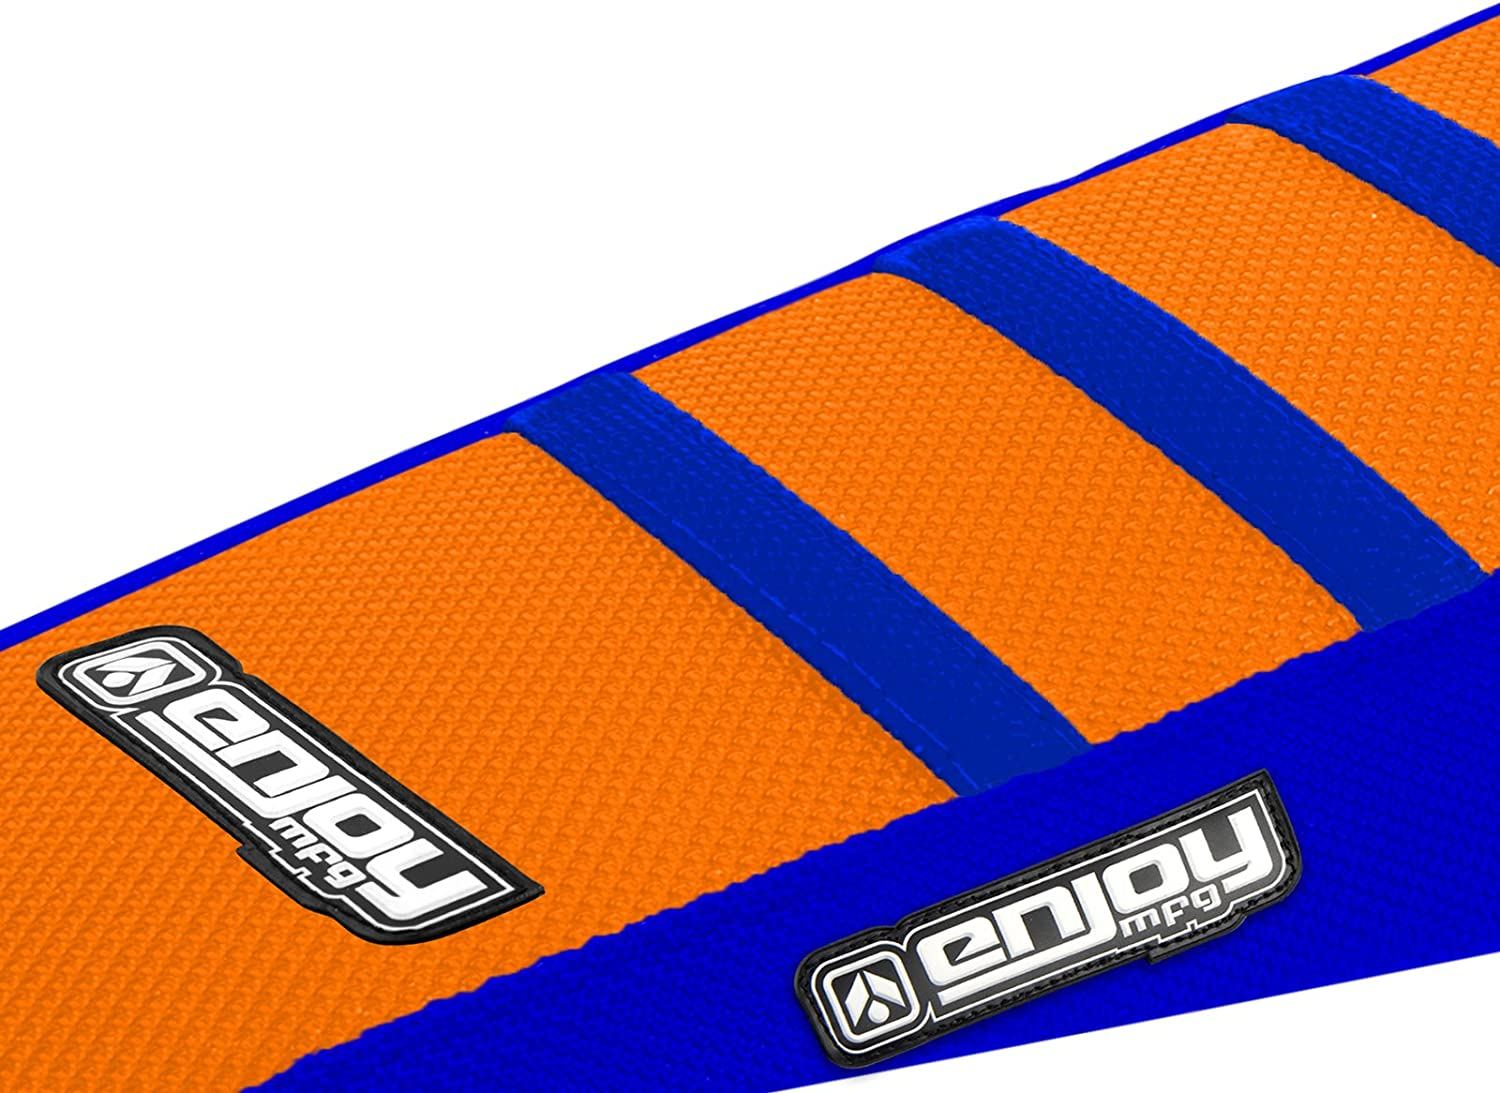 KTM SX 50 2009-2015 Ribbed Gripper Seat Cover All Blue Orange Ribs Motocross